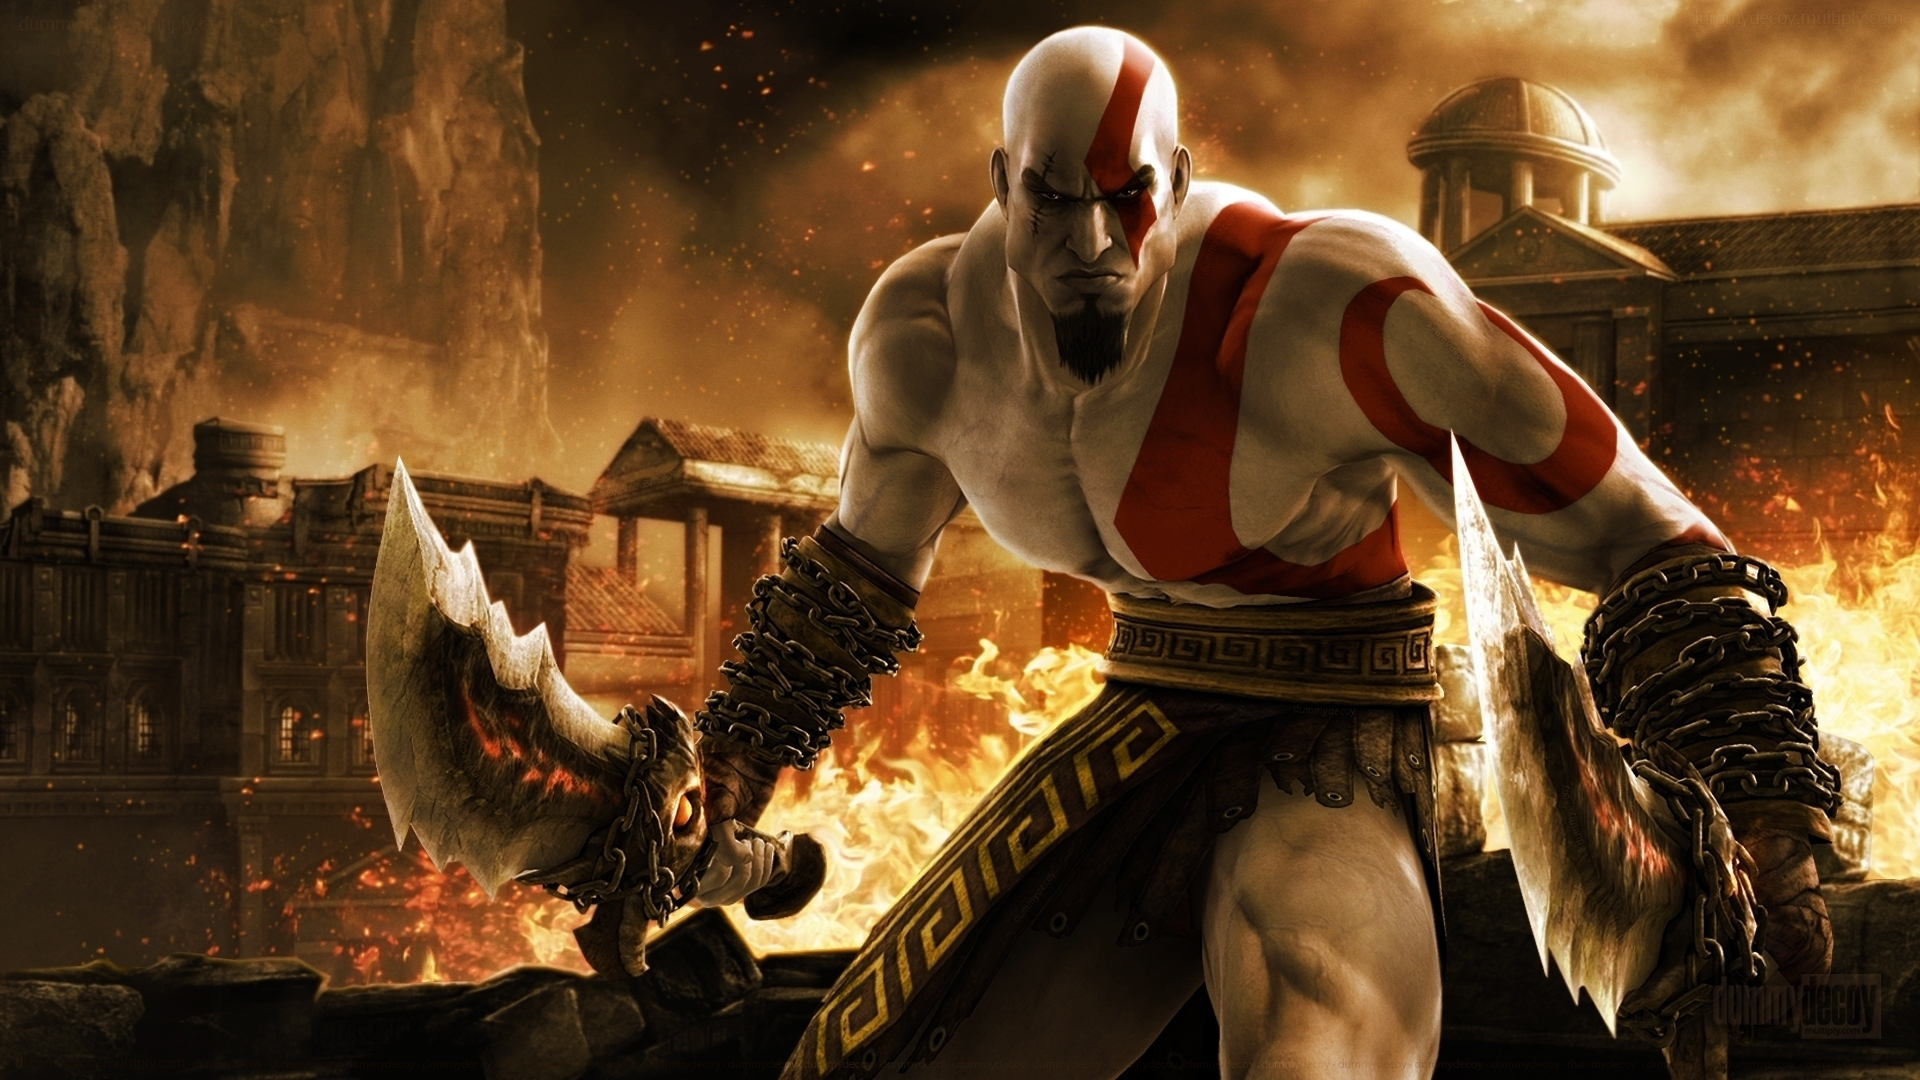 Kratos 4k Wallpapers For Your Desktop Or Mobile Screen Free And